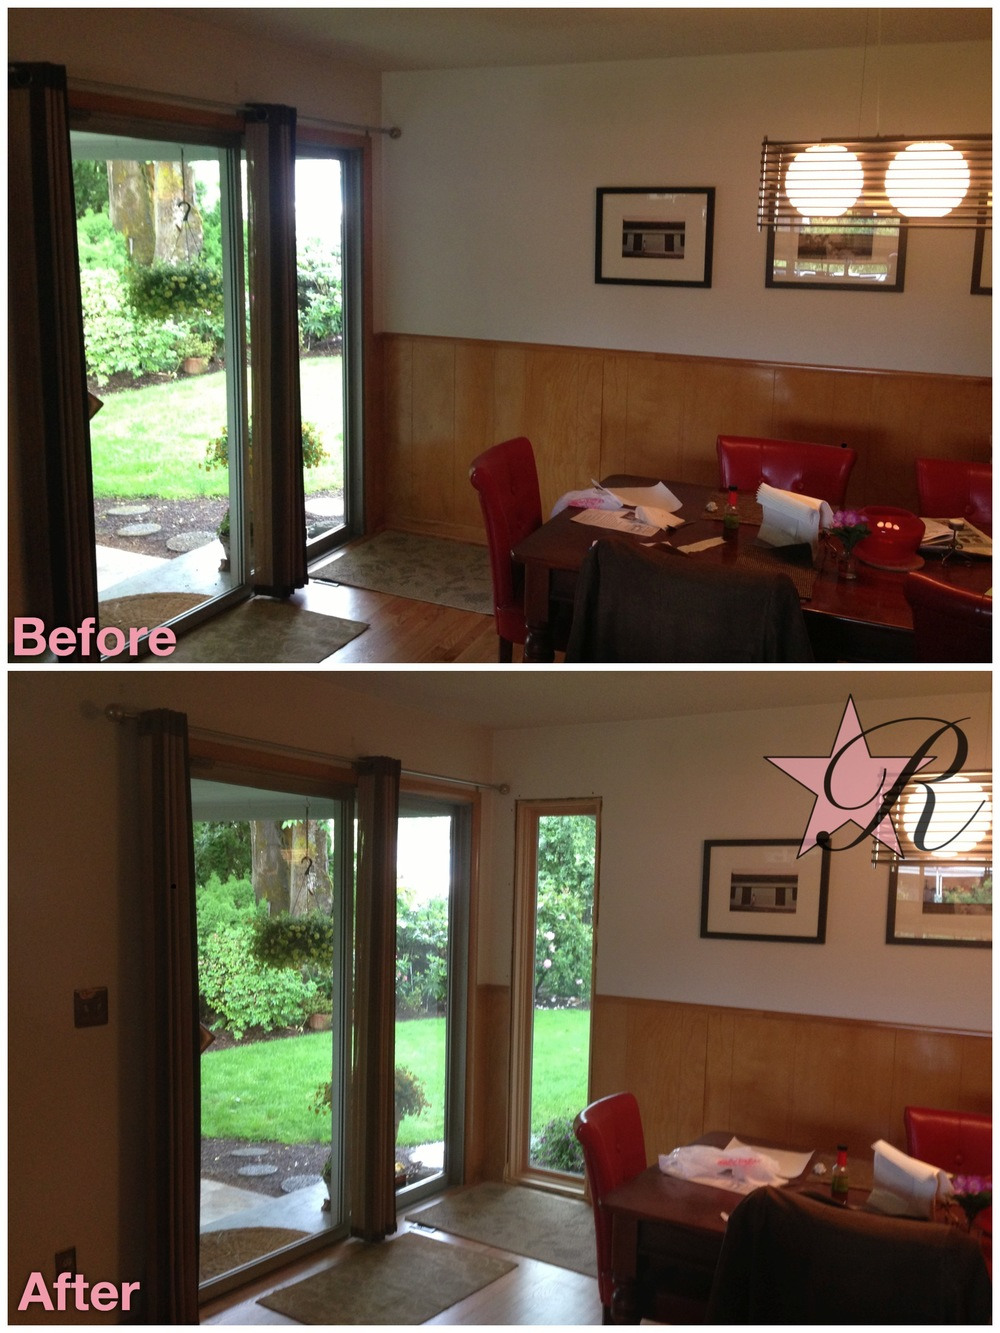 Installing a new window to the right of the sliding glass door made the dining room feel more open and brighter. Also, the clients could now see the flowers blooming in the backyard.